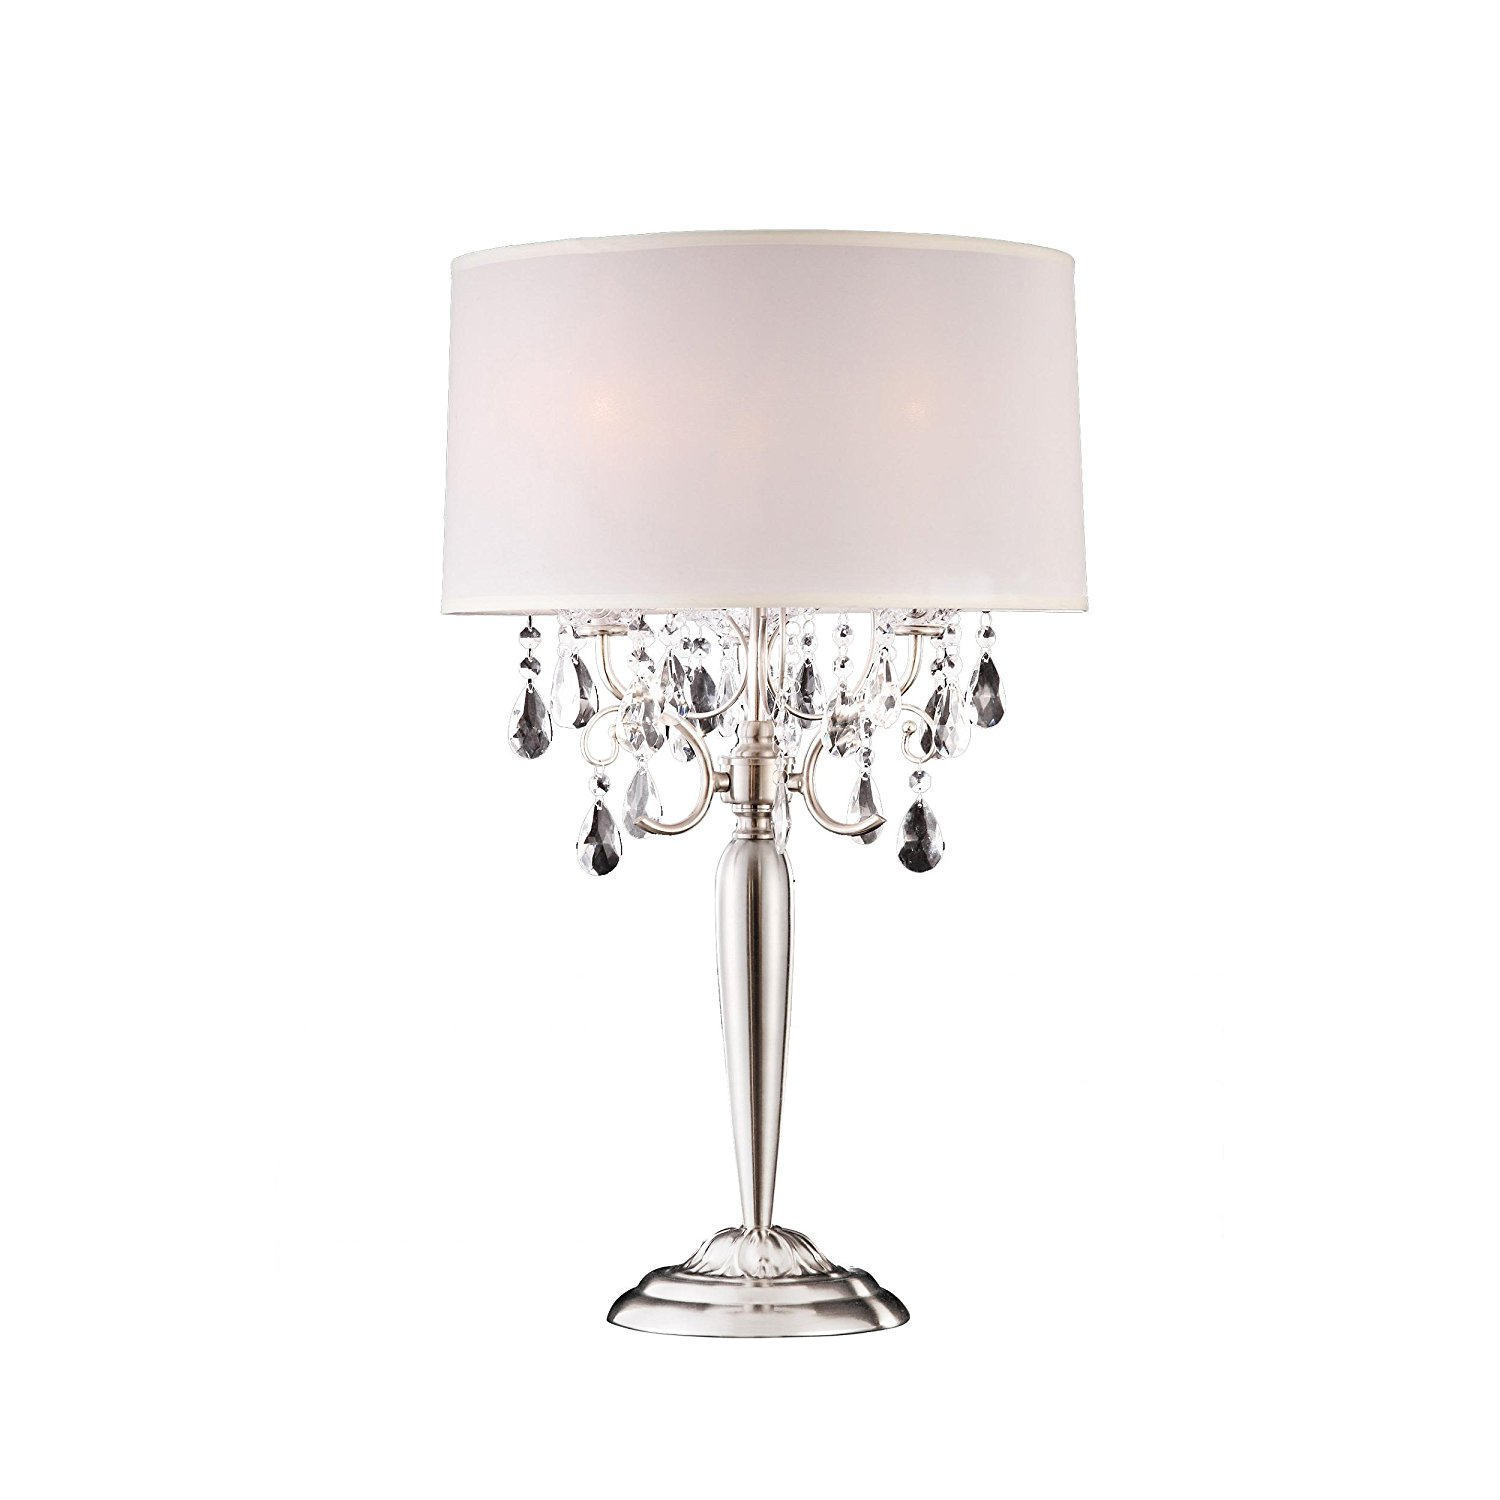 Bedroom Reading Lamps Where To Use Small Crystal Table Lamps Warisan Lighting